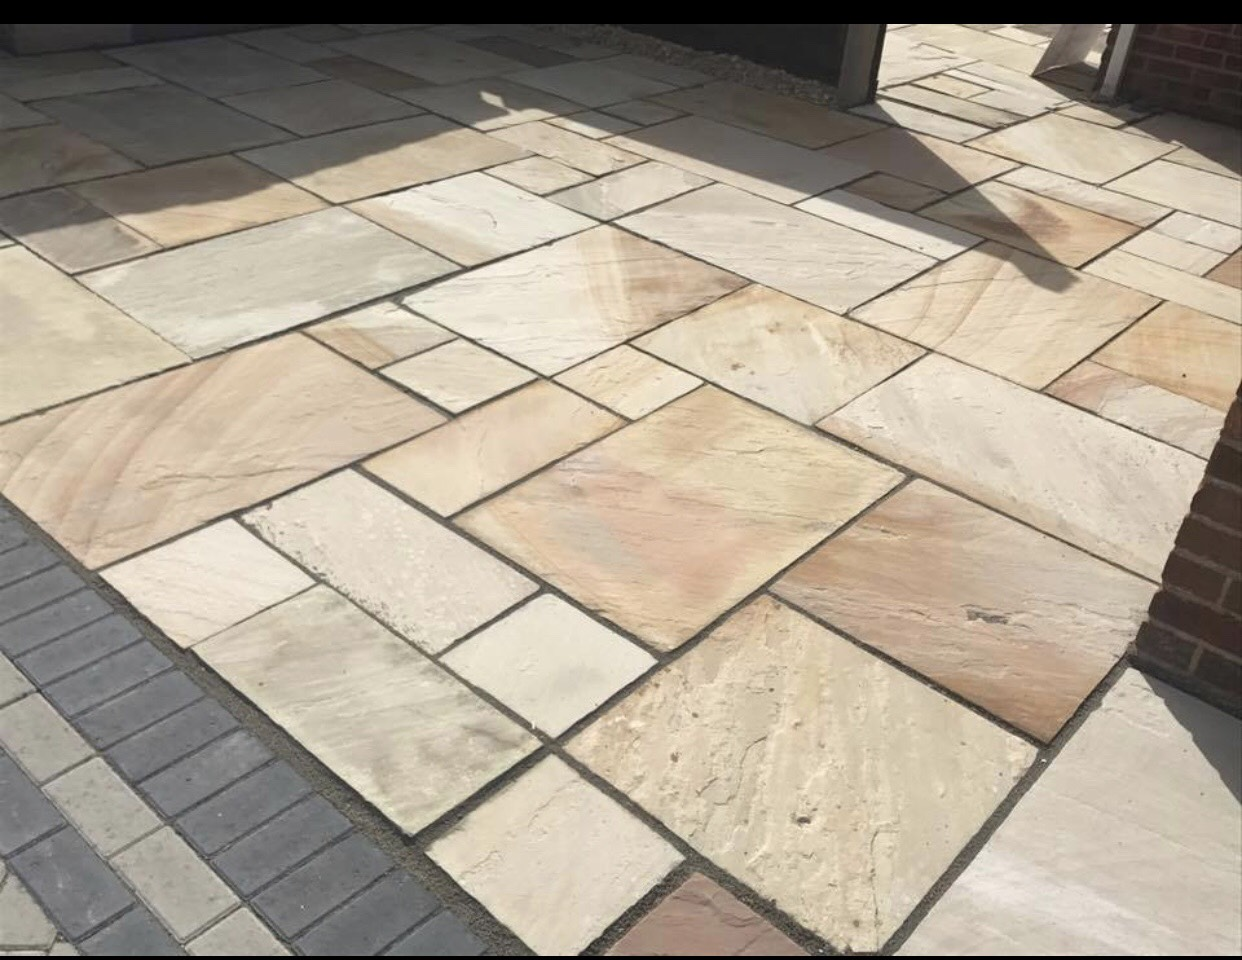 more work for block paving in oxford - the image shows a block paved patio